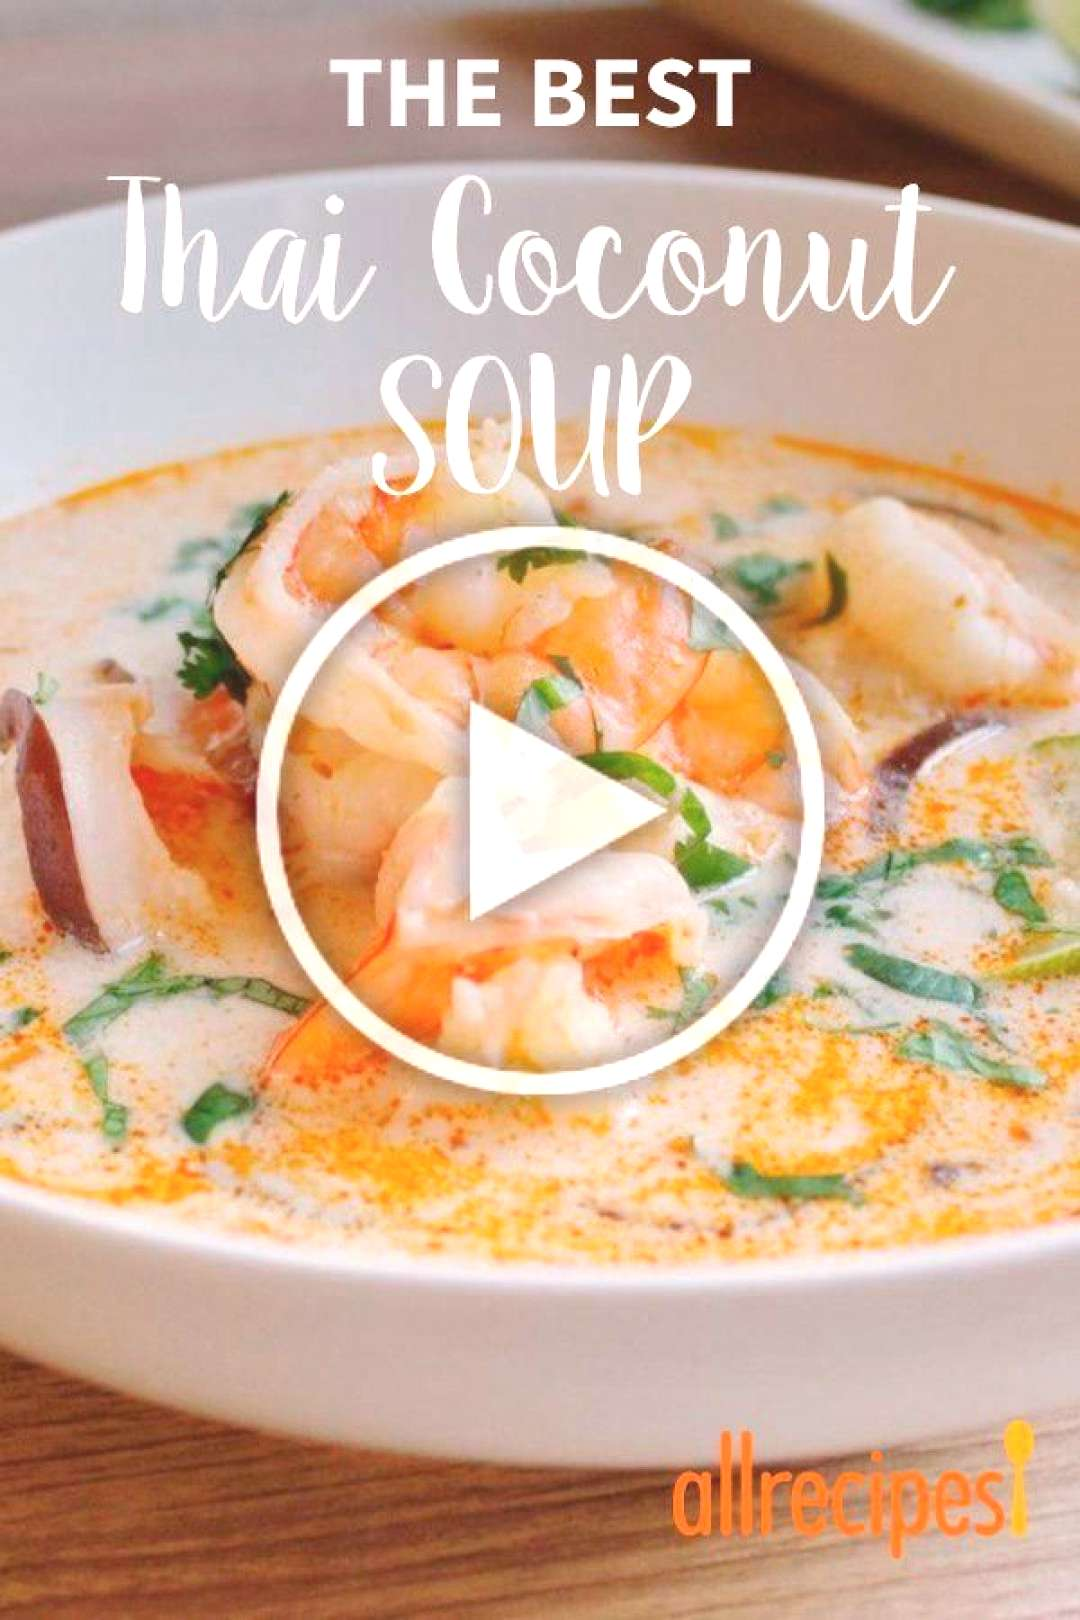 The Best Thai Coconut Soup | Authentic, bold, and delicious Thai flavors make this soup irresistibl